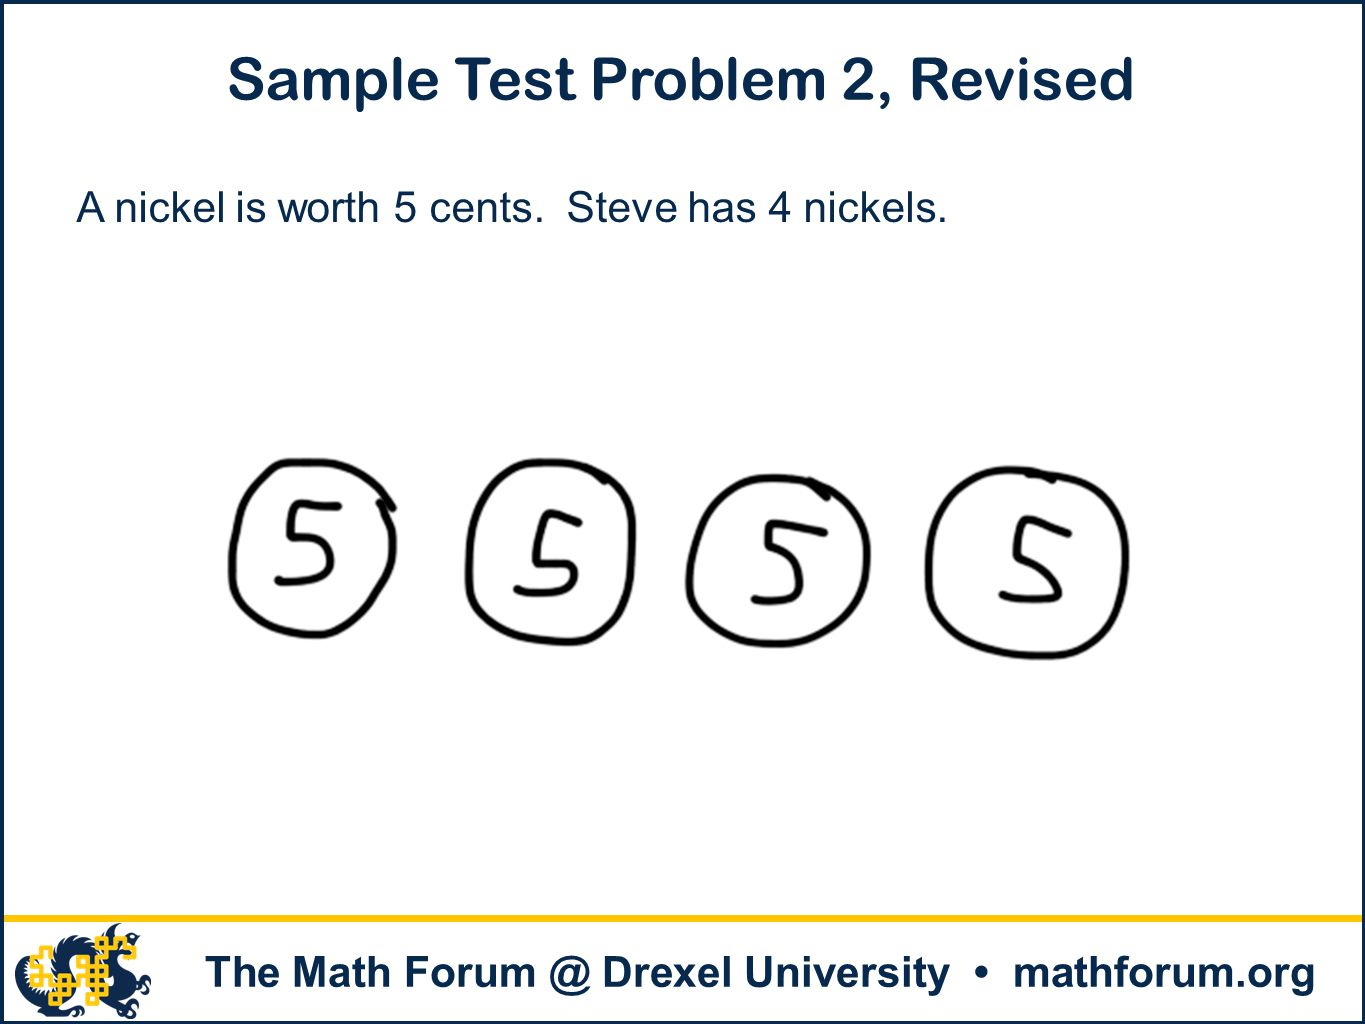 Sample Test Problem 2, Revised